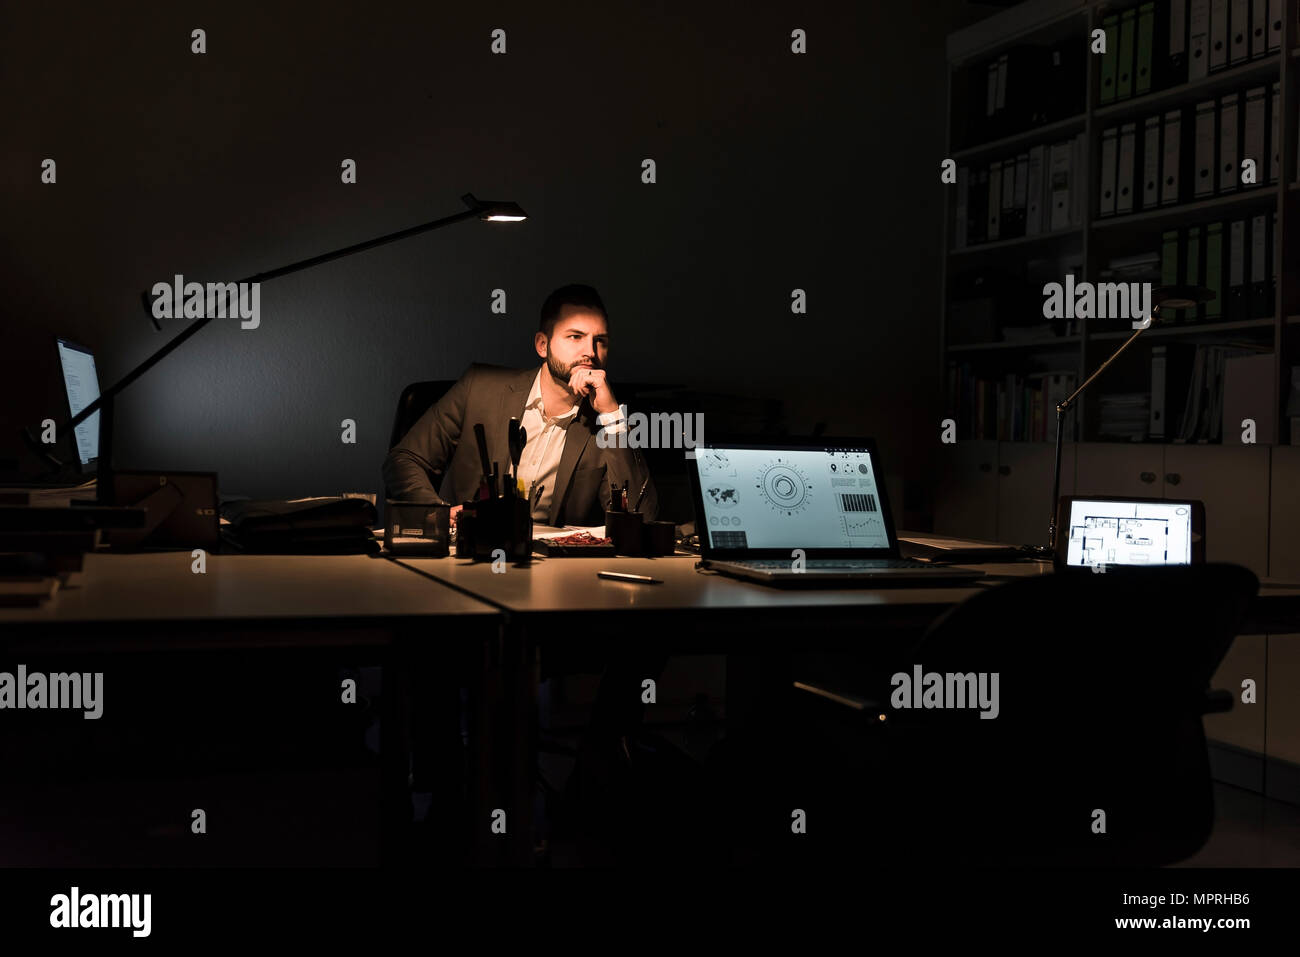 Pensive businessman sitting at desk in office at night Banque D'Images